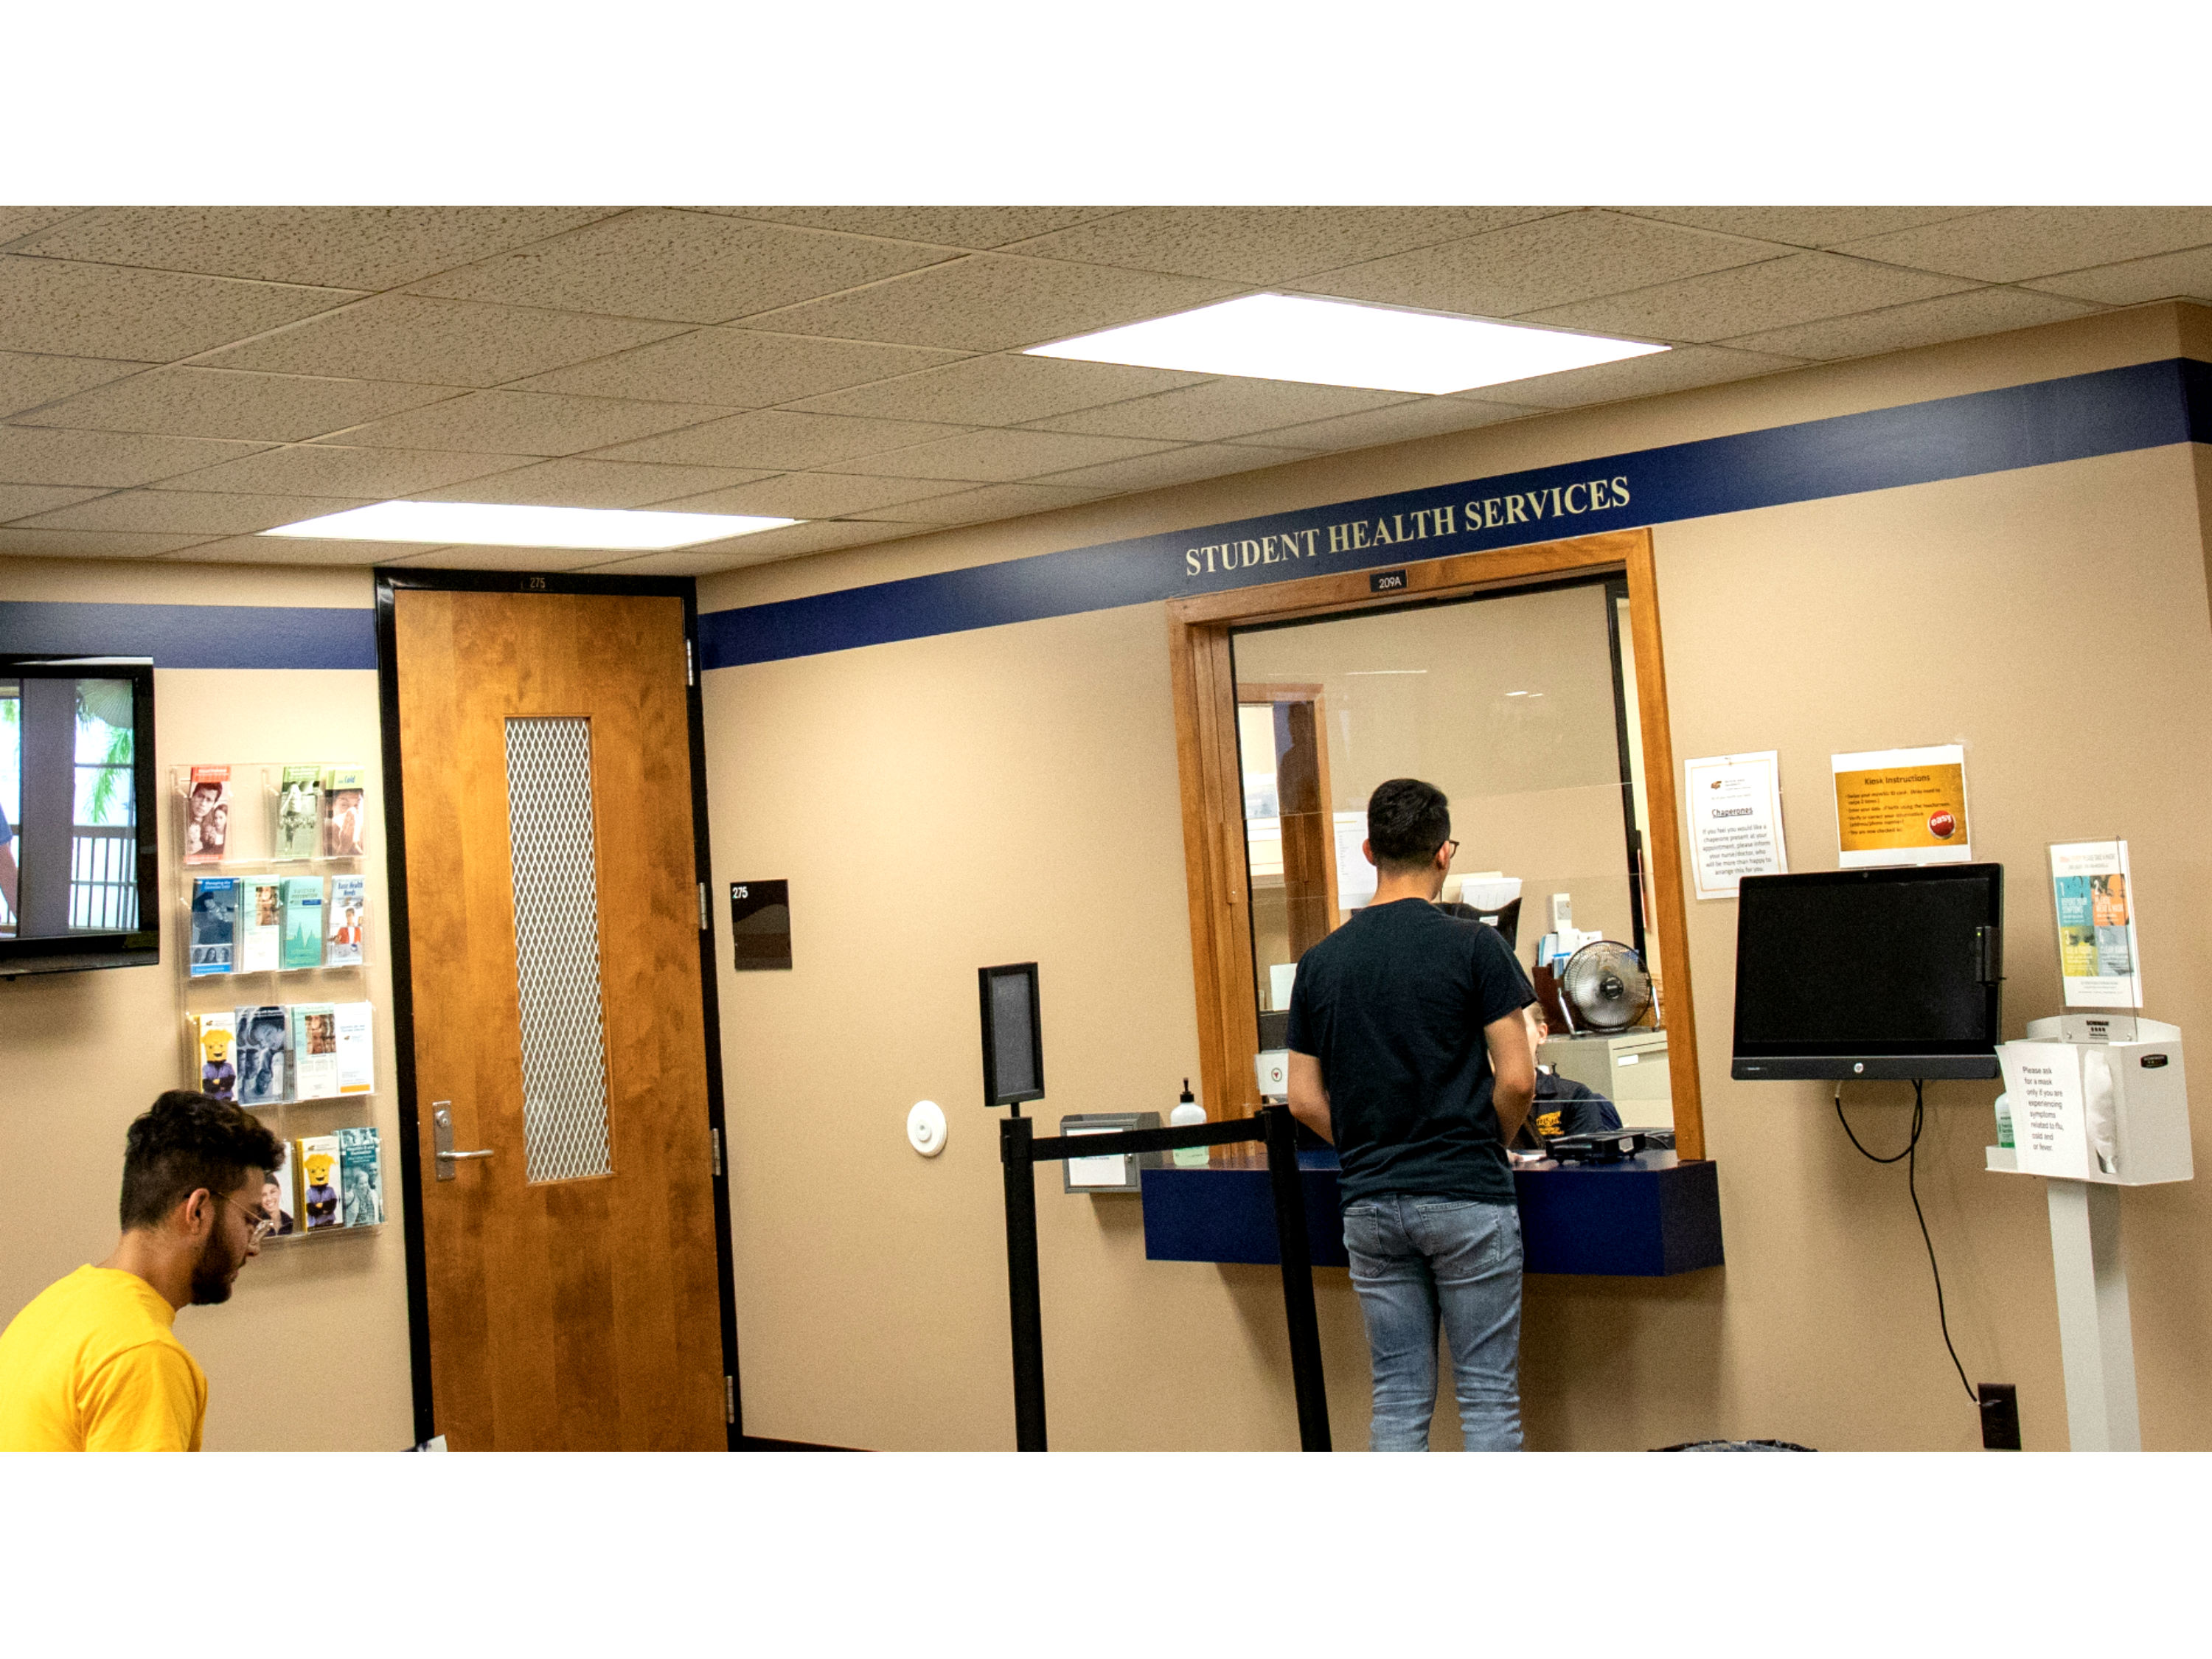 students checking in at student health services waiting room